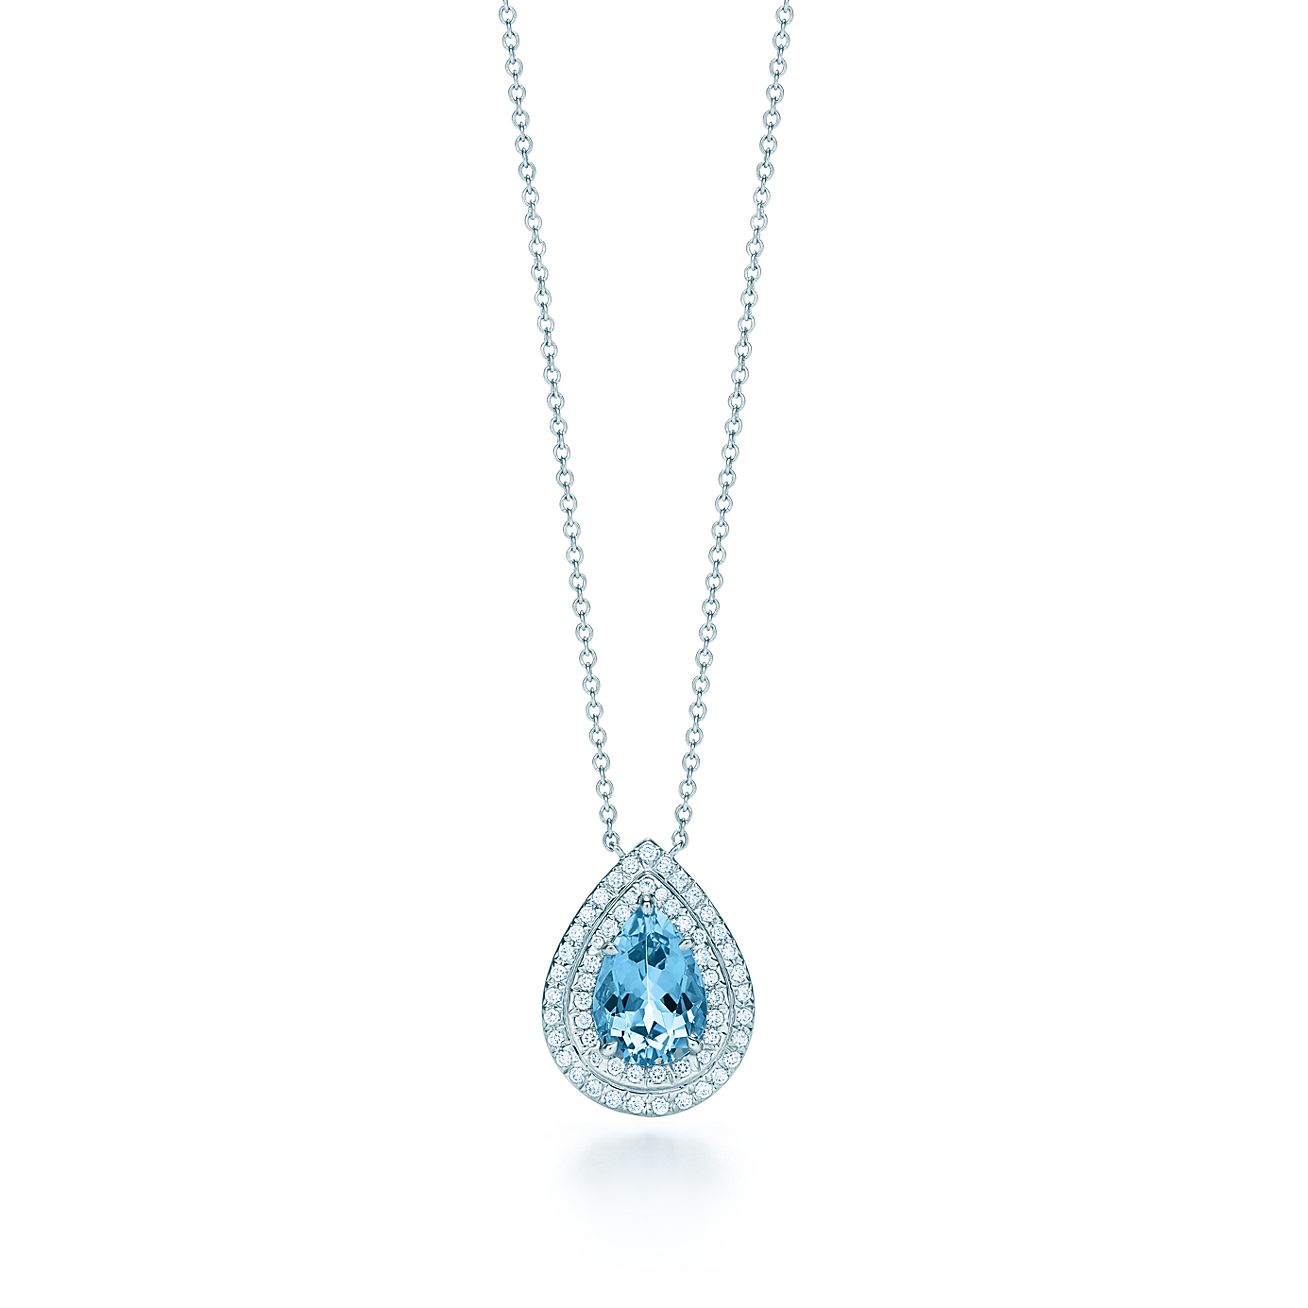 tiffany soleste pendant in platinum with an aquamarine and